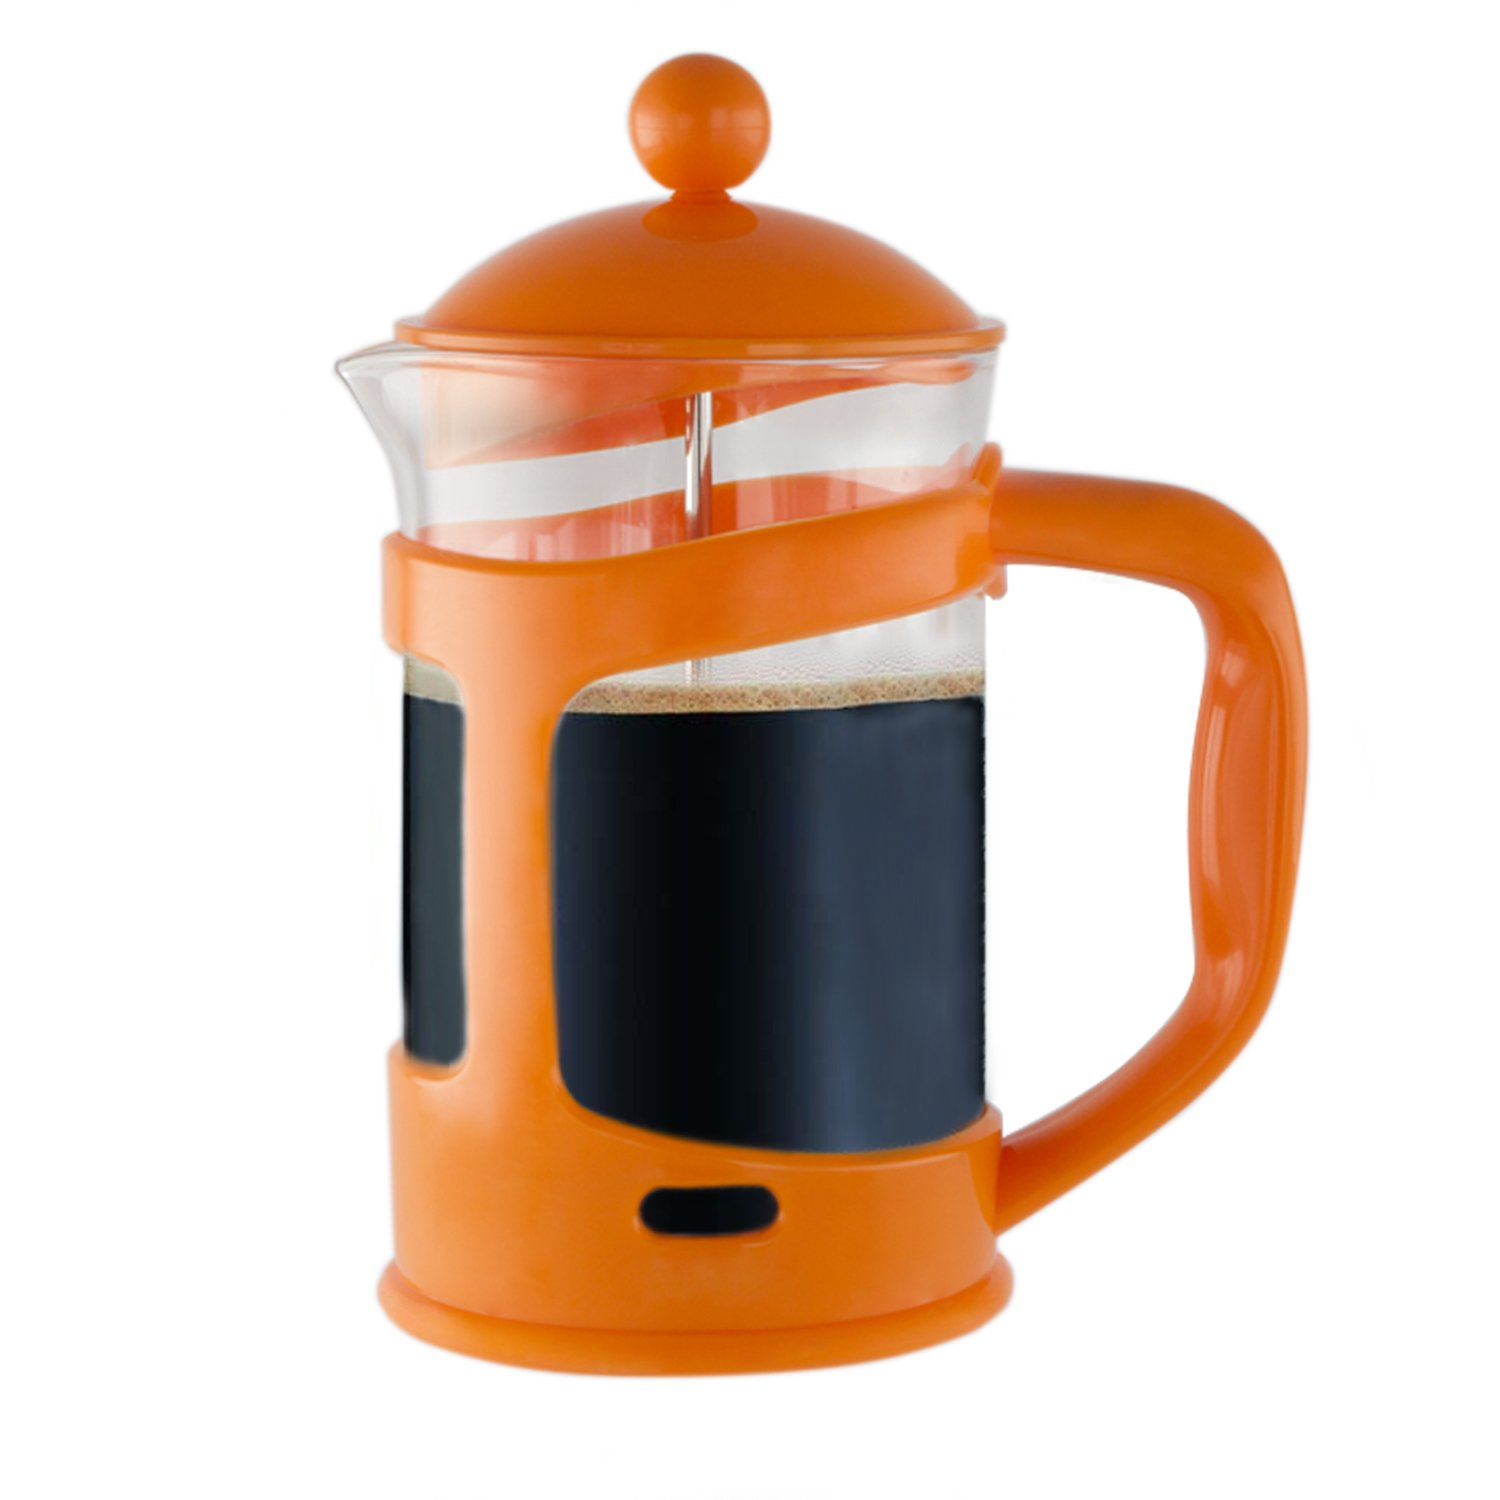 Imperial Home Colorful French Press Coffee & Tea Maker 3 Cup (28 Oz) – Borosilicate Glass Cafetiere French Coffee Maker With Mesh Filter (Orange)